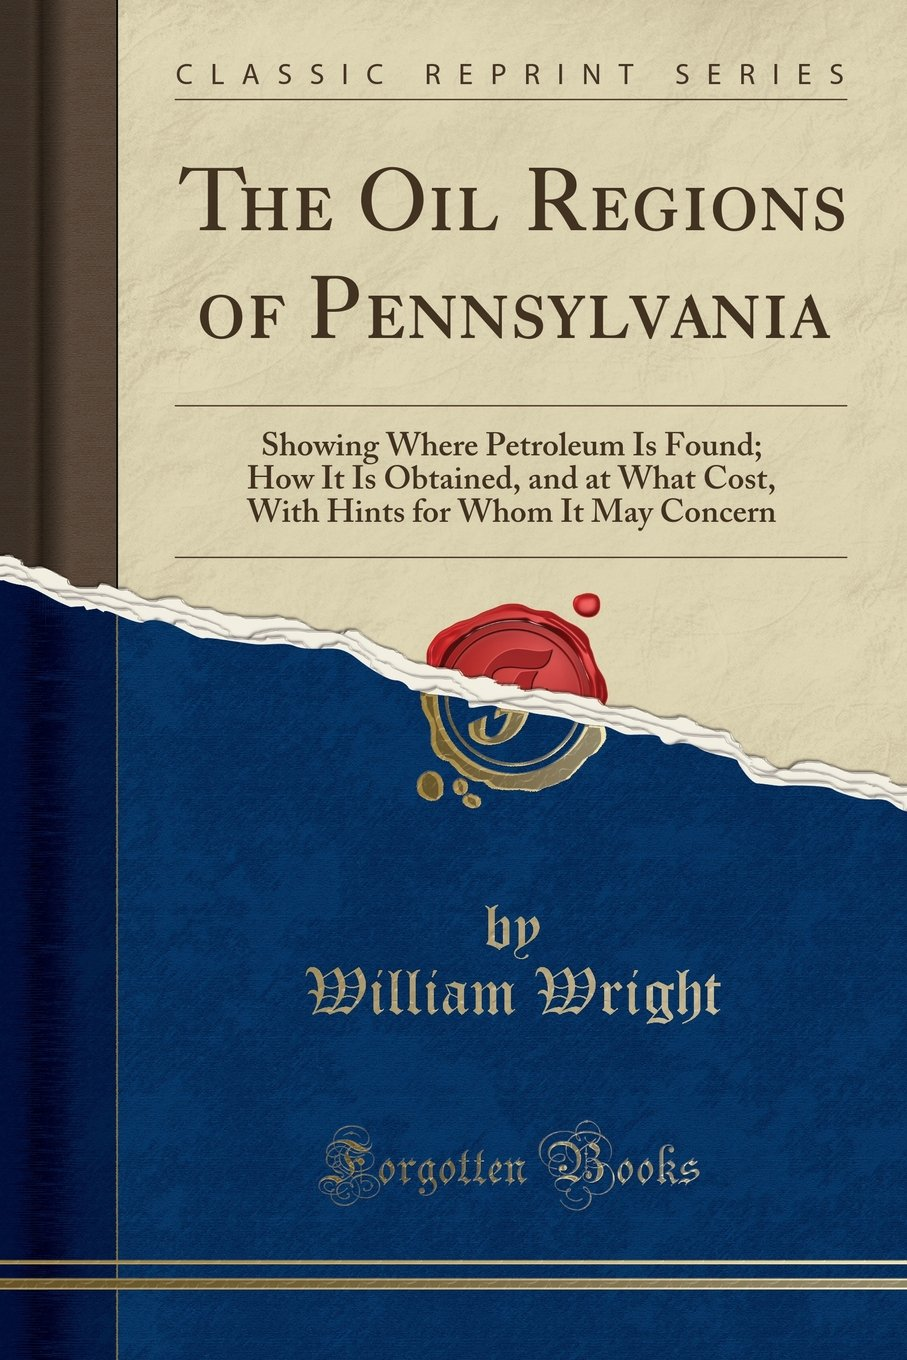 The Oil Regions of Pennsylvania: Showing Where Petroleum Is Found; How It Is Obtained, and at What Cost, With Hints for Whom It May Concern (Classic Reprint) PDF